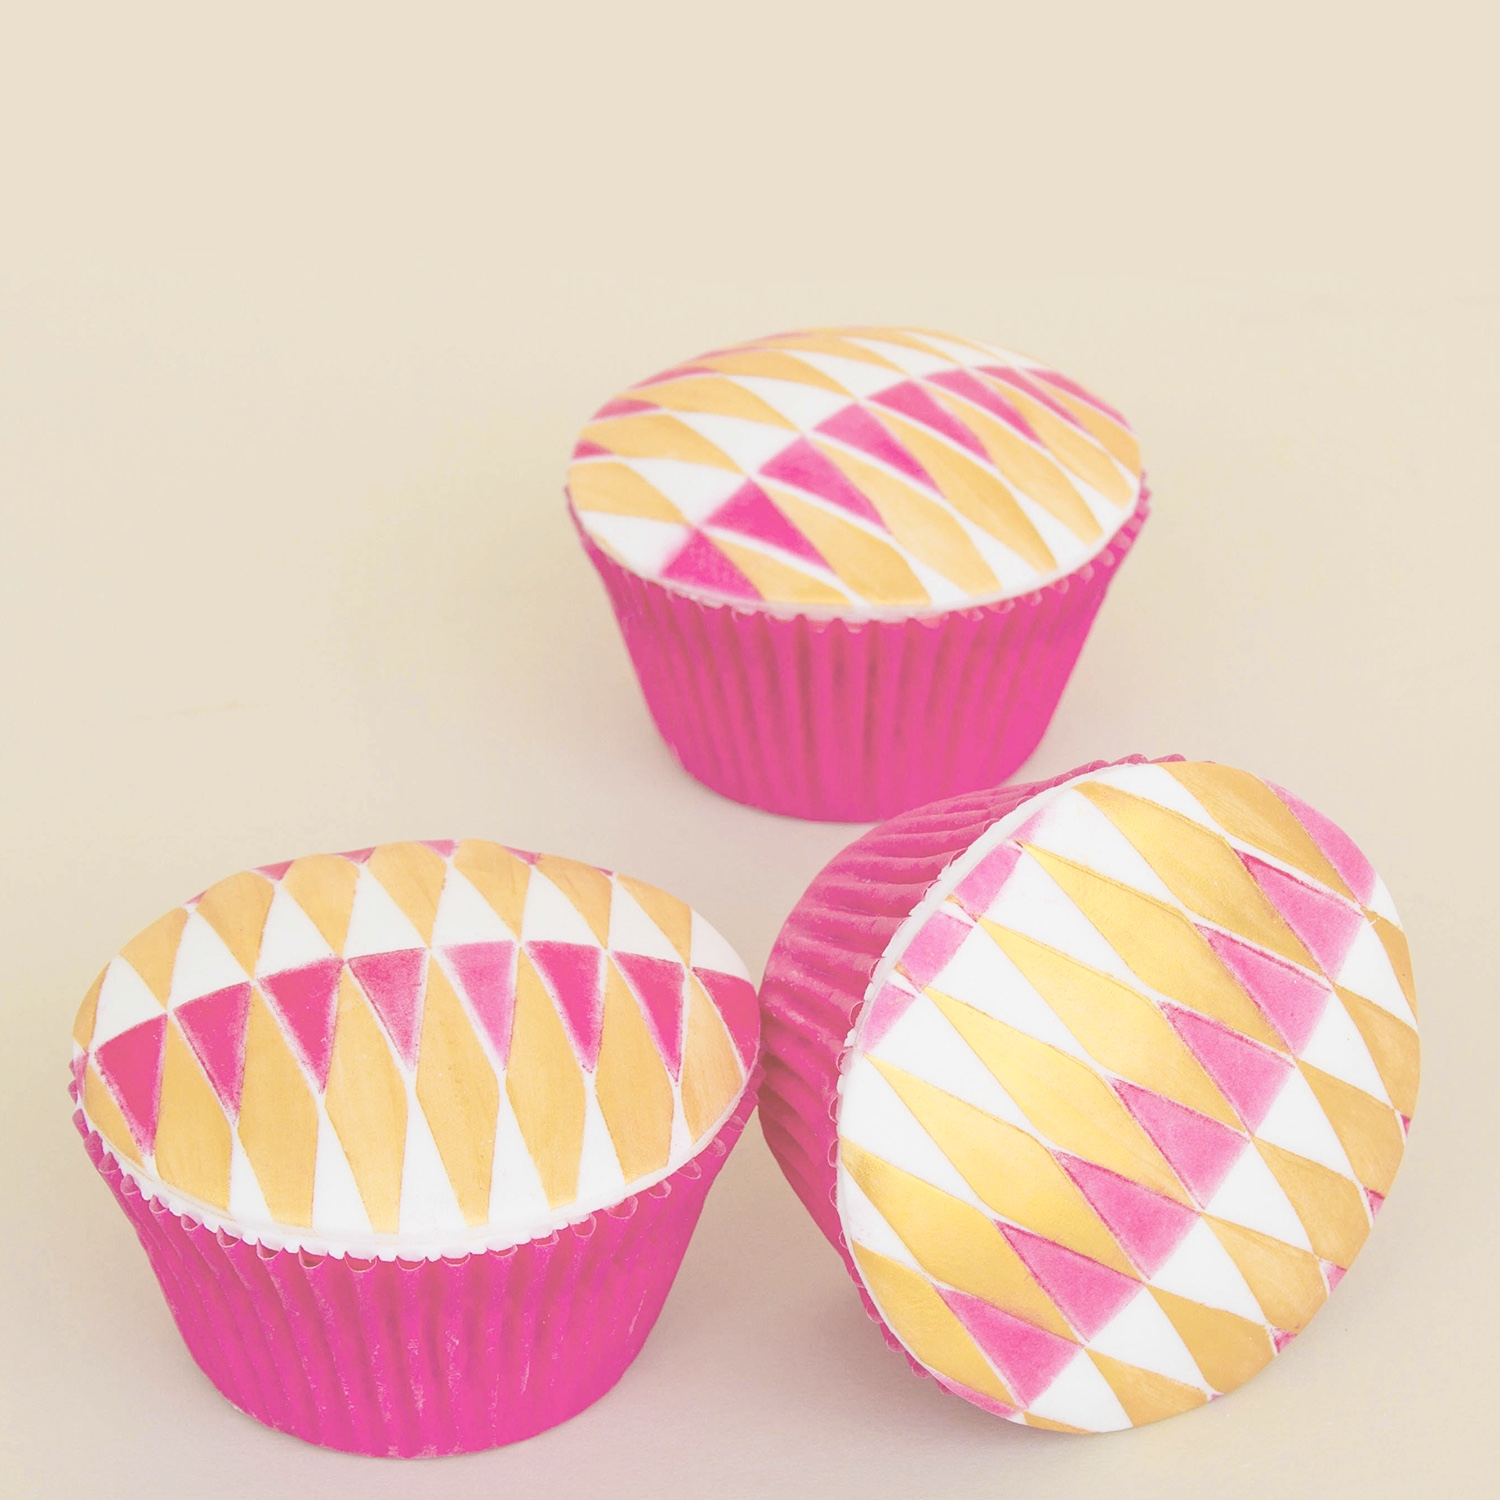 Gold & Pink Triangle Cupcakes